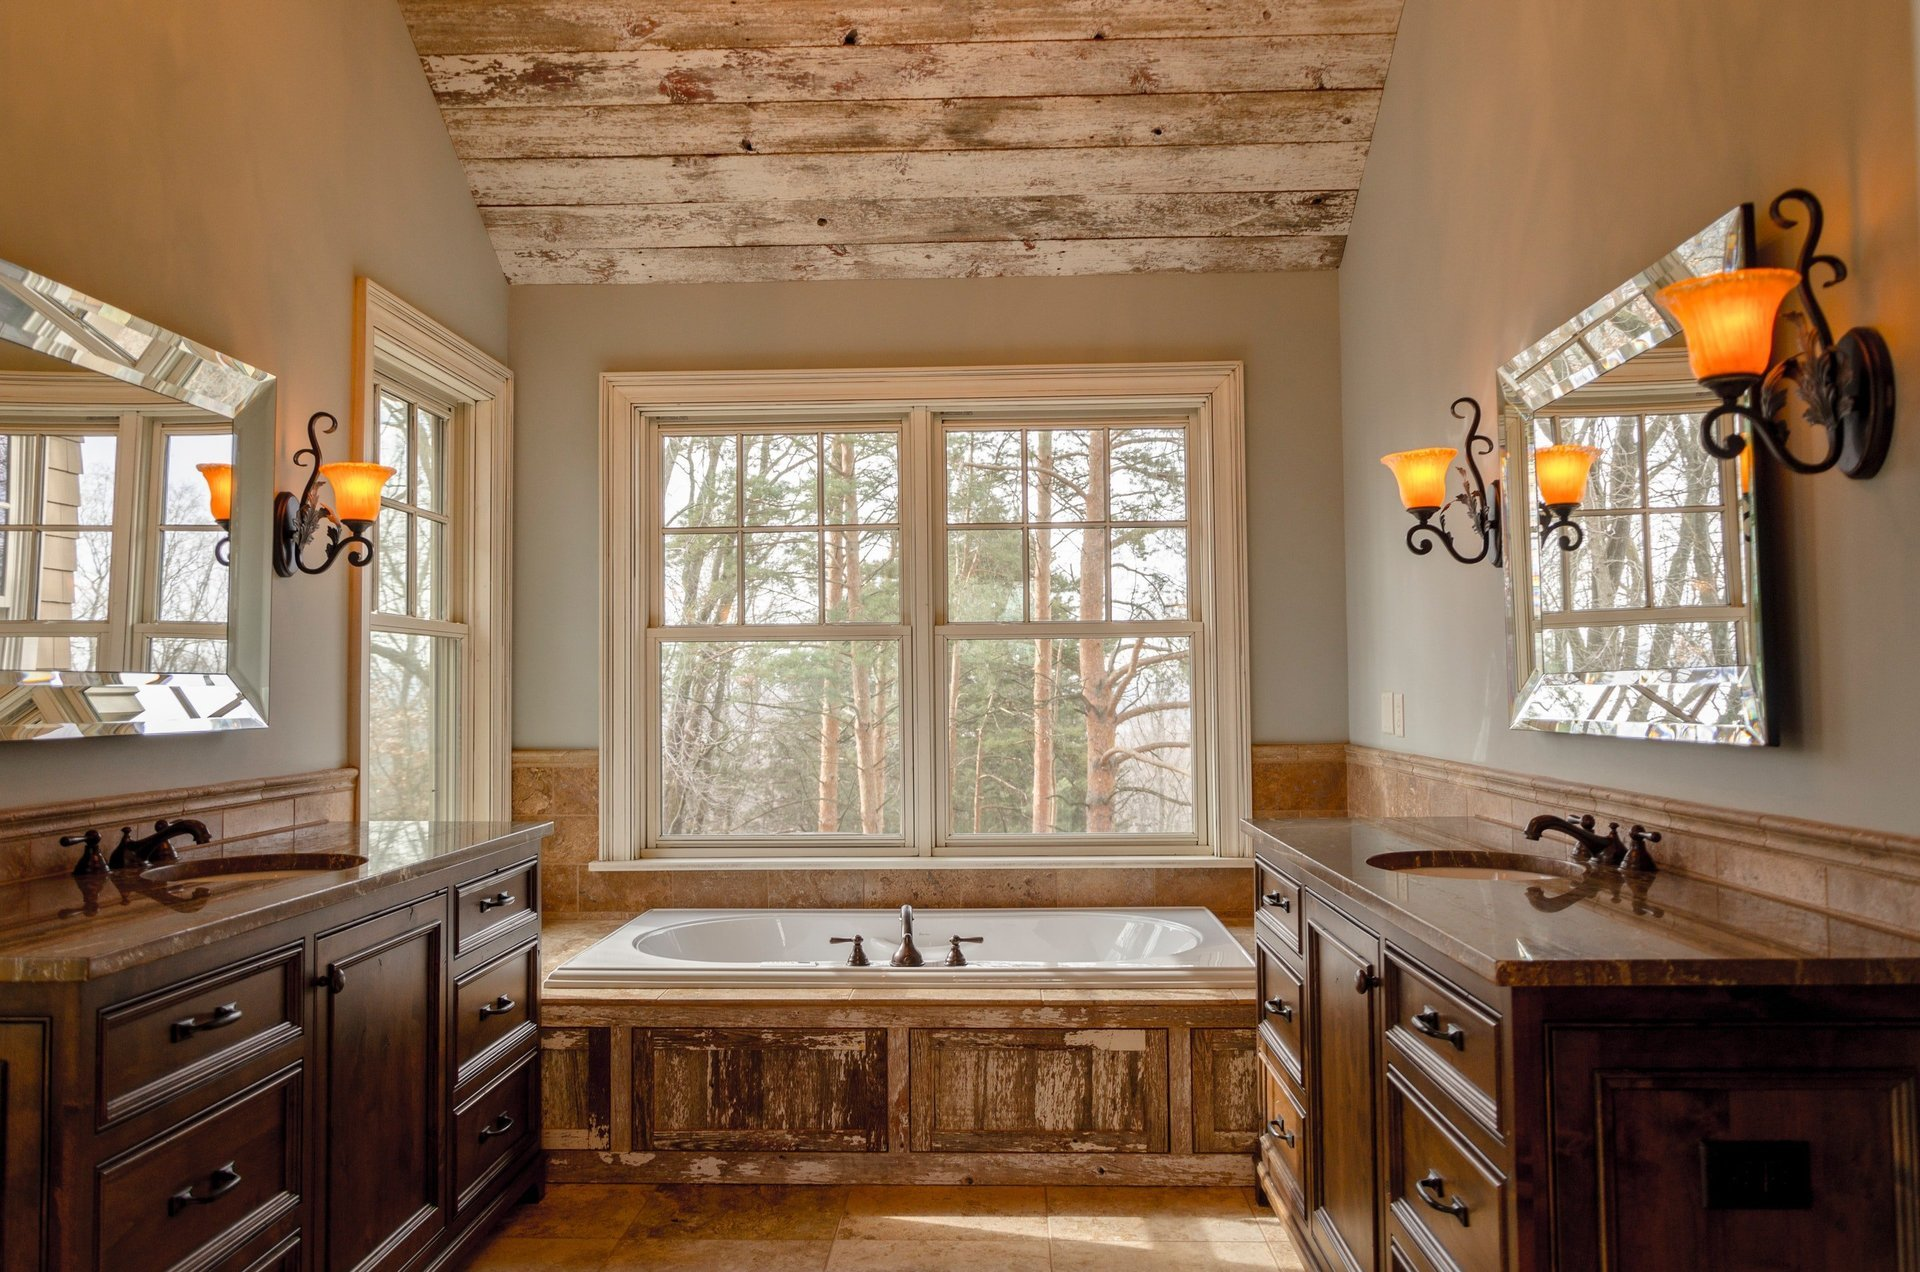 Bathroom remodeling greater st louis mo st evans inc for Bathroom remodeling st louis